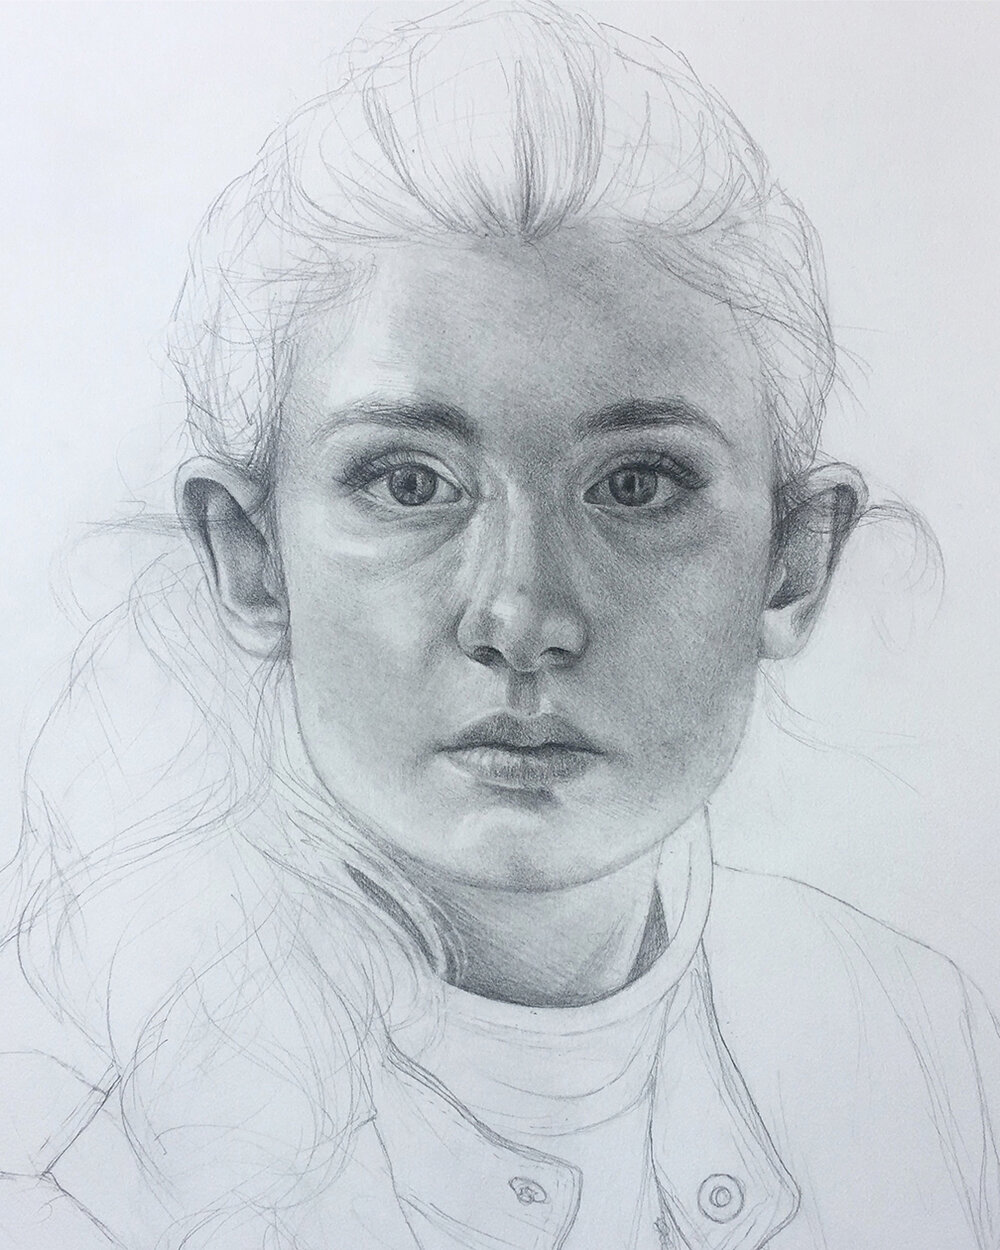 Life-Size Self Portrait (In Progress)